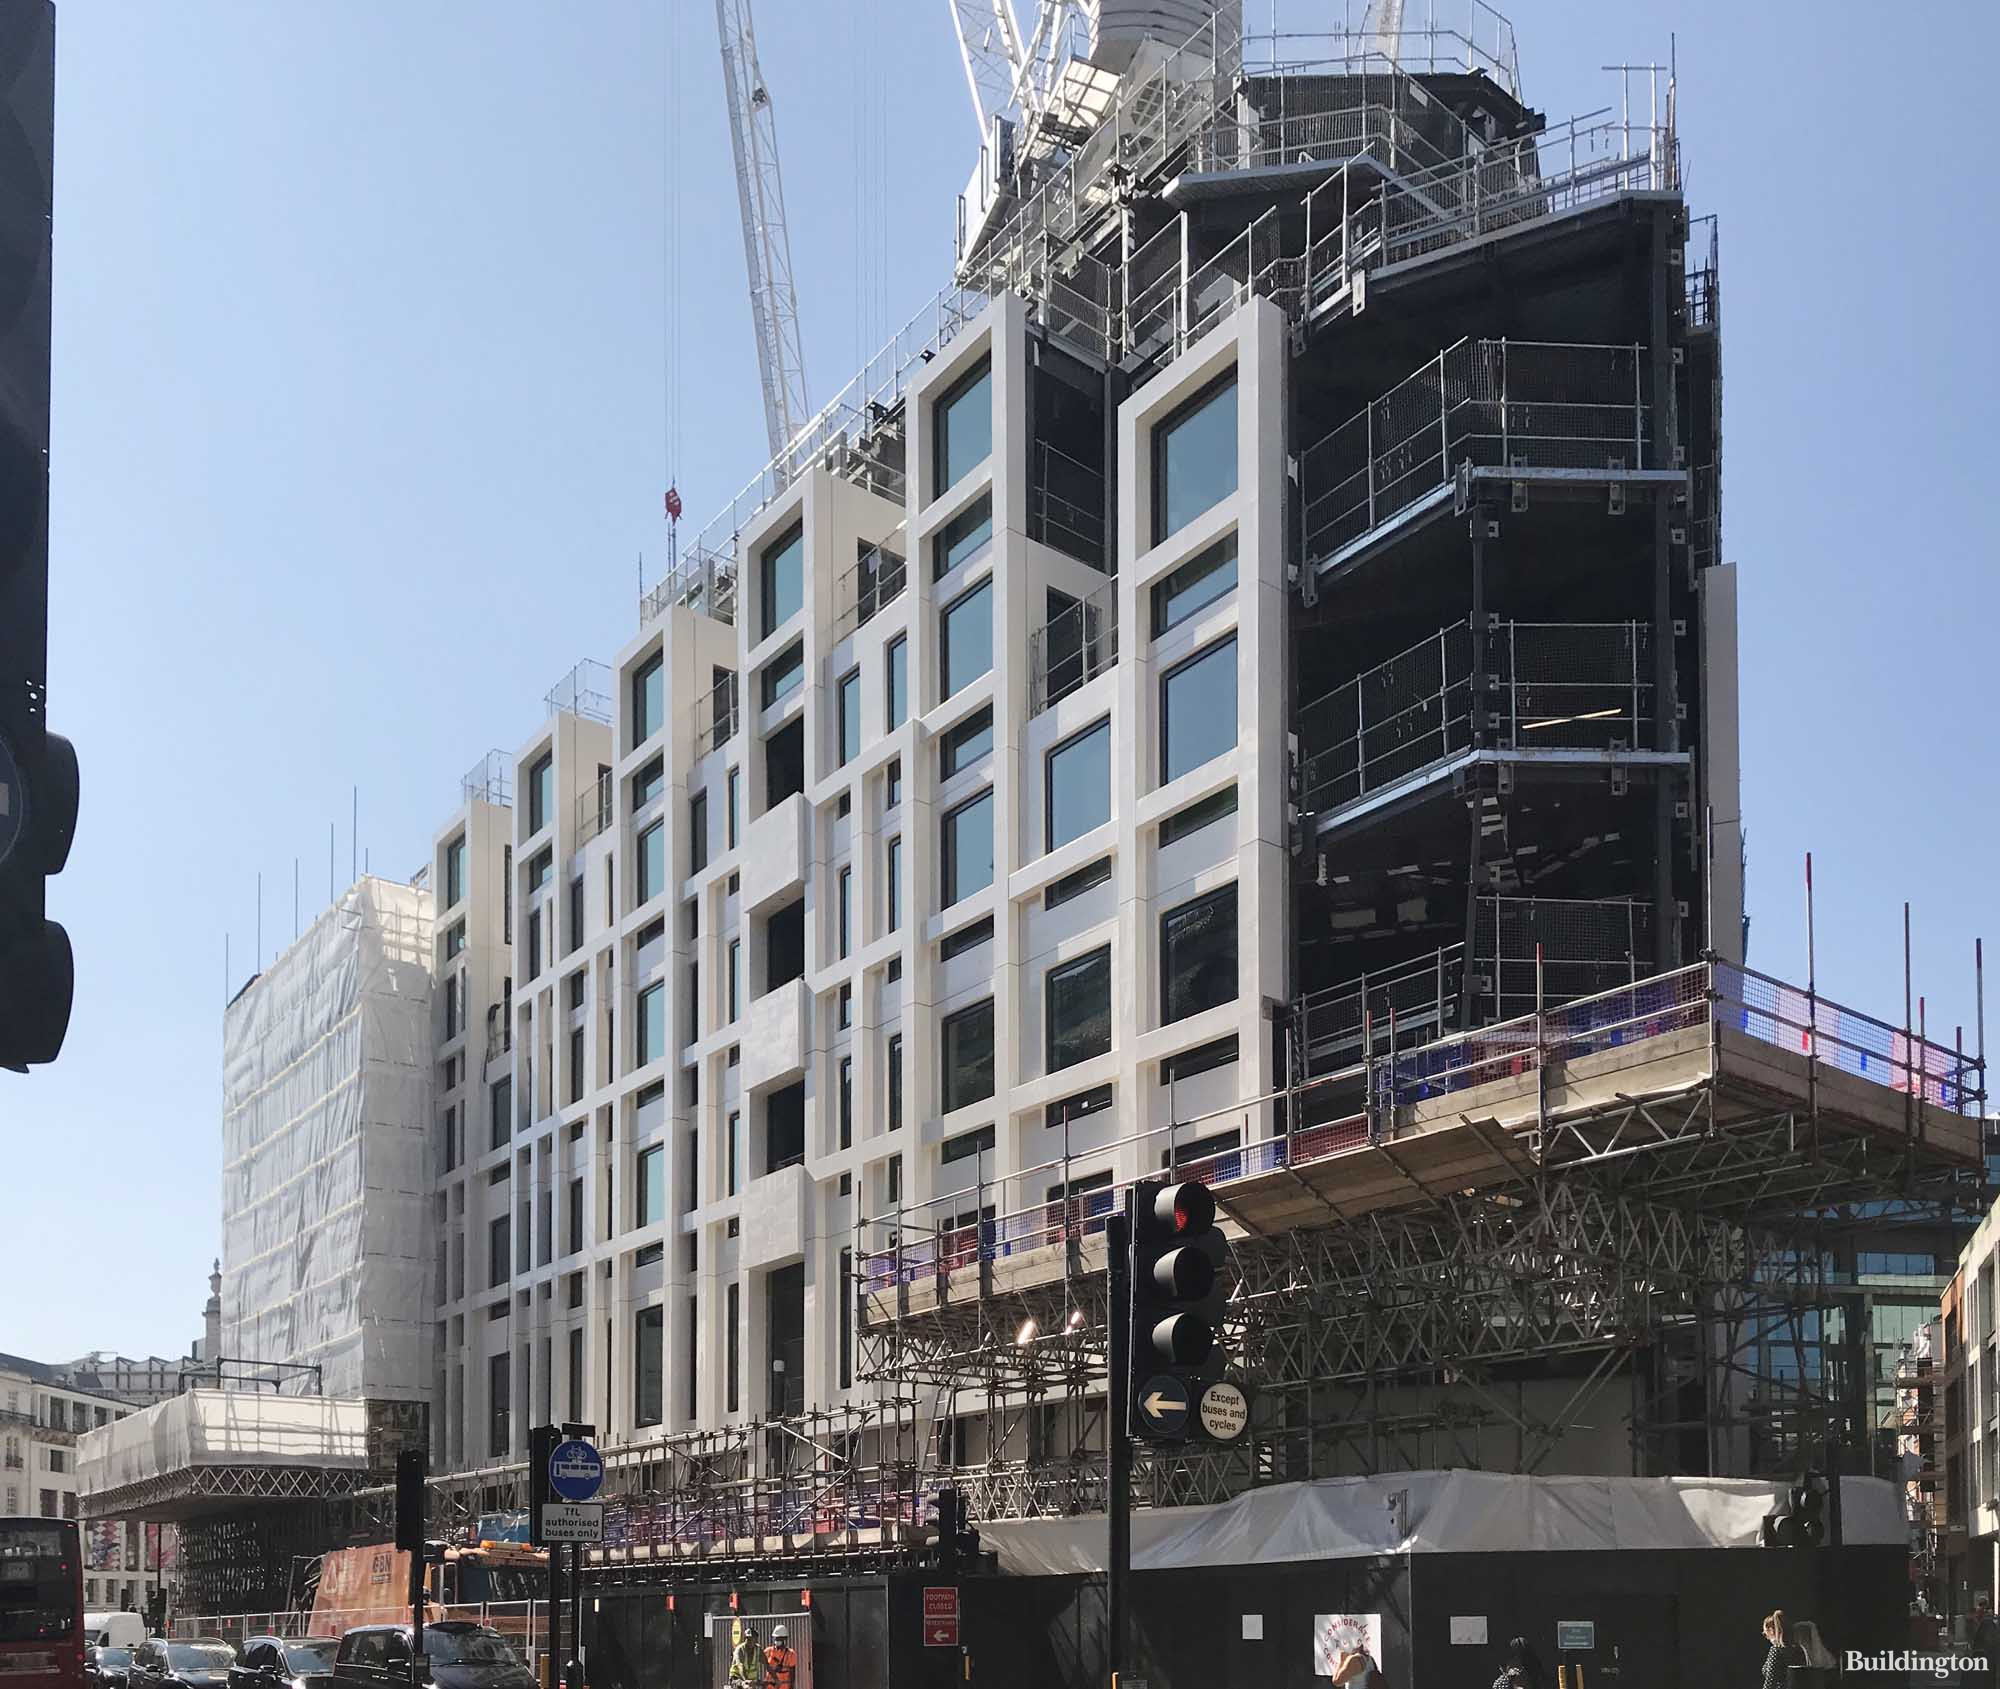 View to Lucent W1 development on Shaftesbury Avenue in London W1.